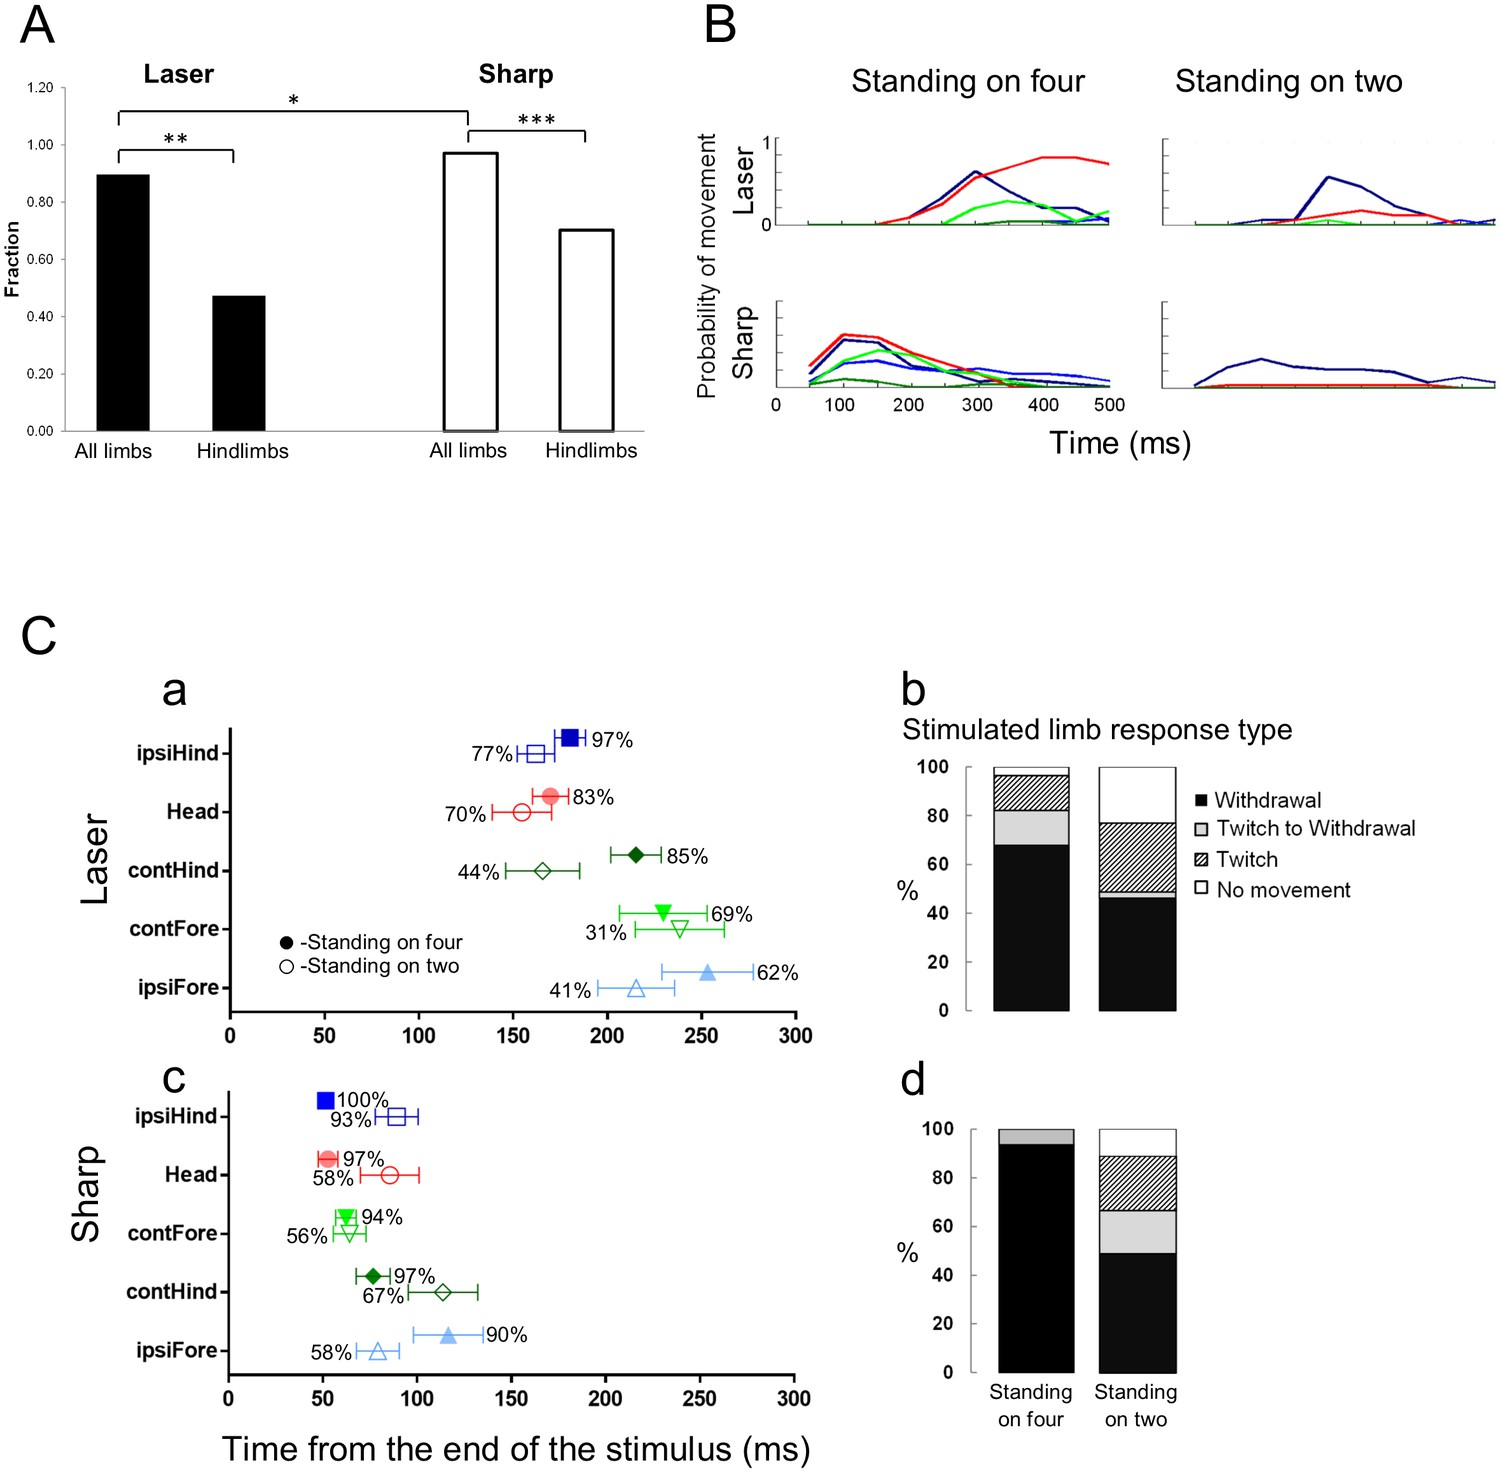 Identification Of A Novel Spinal Nociceptive Motor Gate Control For Randall 102 Central Heating Timer Wiring Diagram Standing On Hindlimbs Decreased The Response Frequency To Noxious Stimuli And Resulted In Fewer Stimulus Evoked Limb Movements